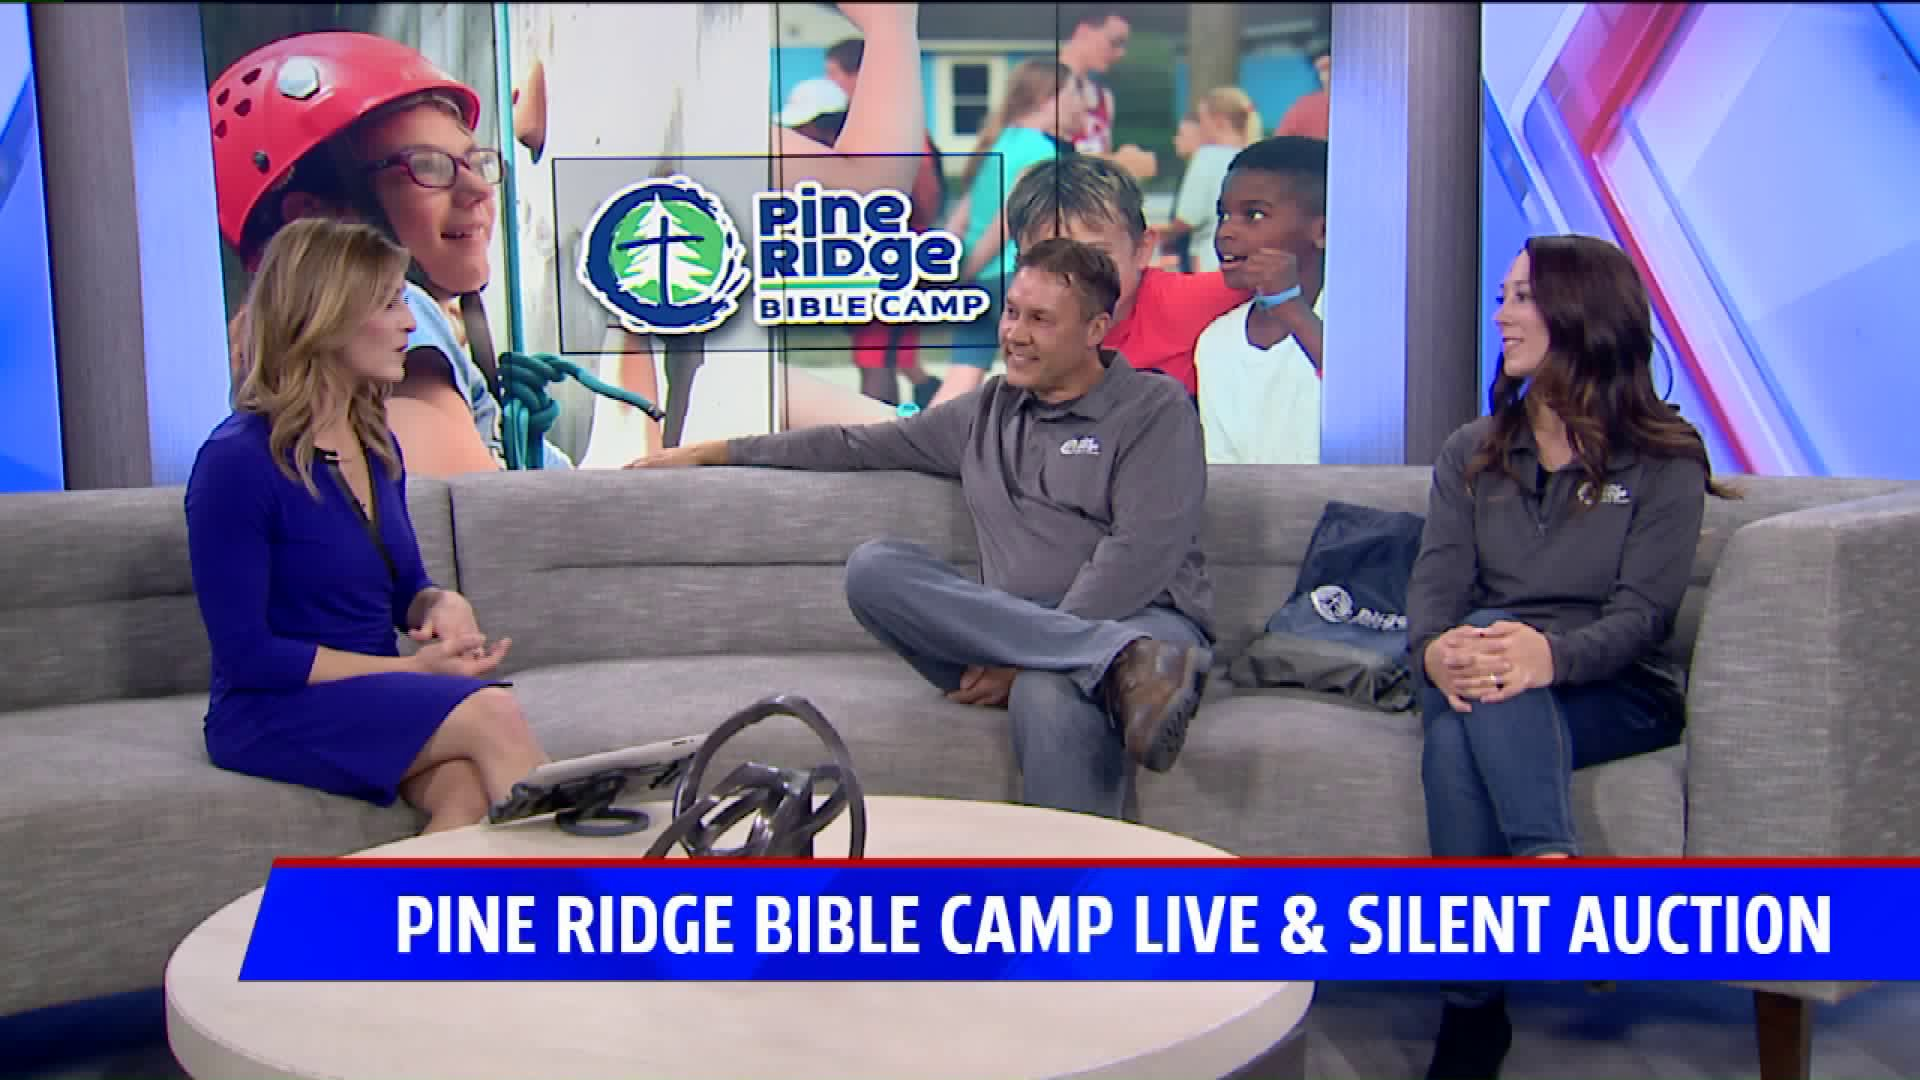 Pine Ridge Bible Camp and Silent Auction